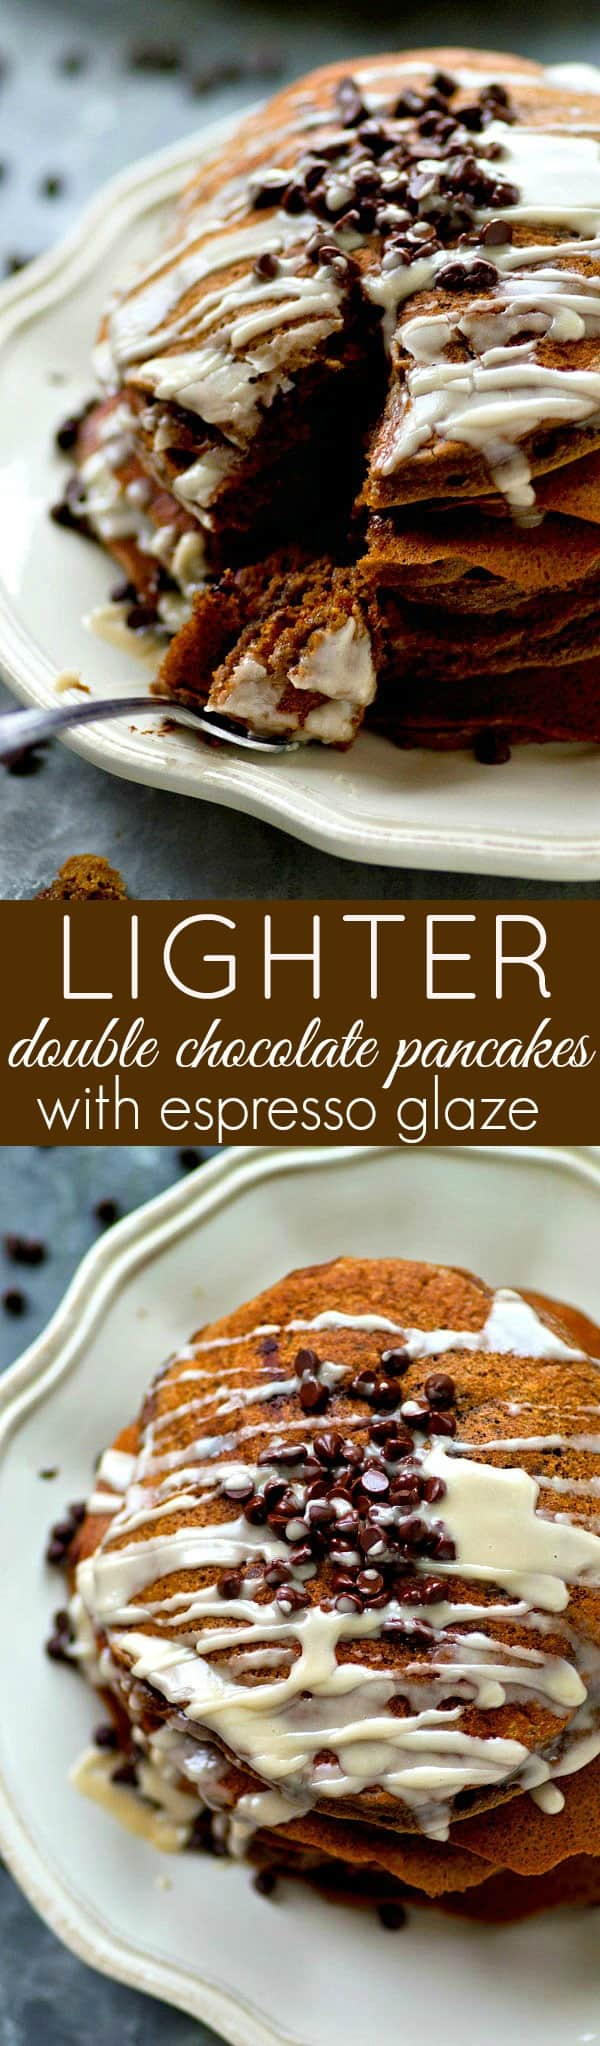 Fluffy double chocolate pancakes with a LIGHTER twist to keep the calories down so you can fill your plate! Drizzle these chocolate-lover's pancakes with tons of espresso glaze!